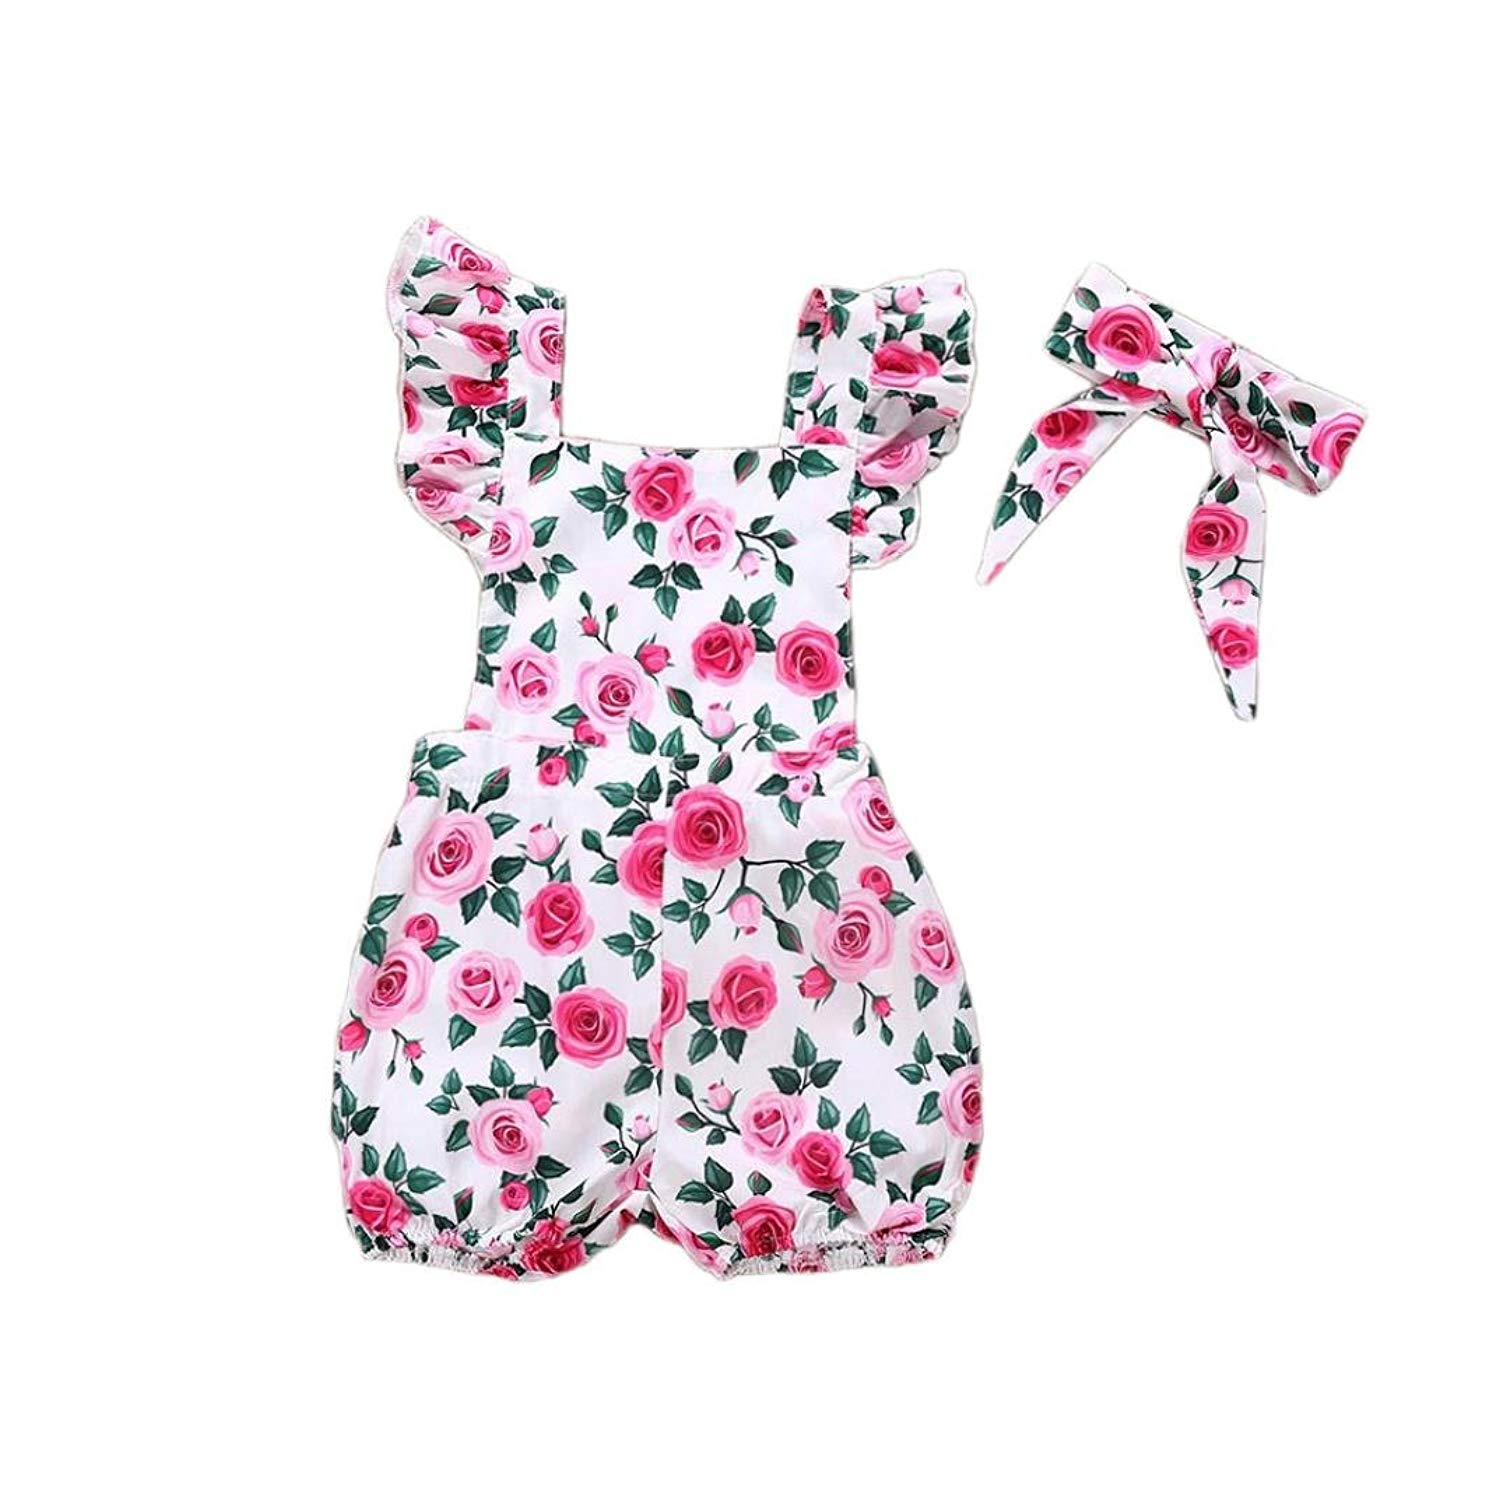 6dfb82a2a72 Get Quotations · Overmal 2PCs Infant Baby Girl Flower Printed Romper Clothes +Bowknot Headband Outfit Sets